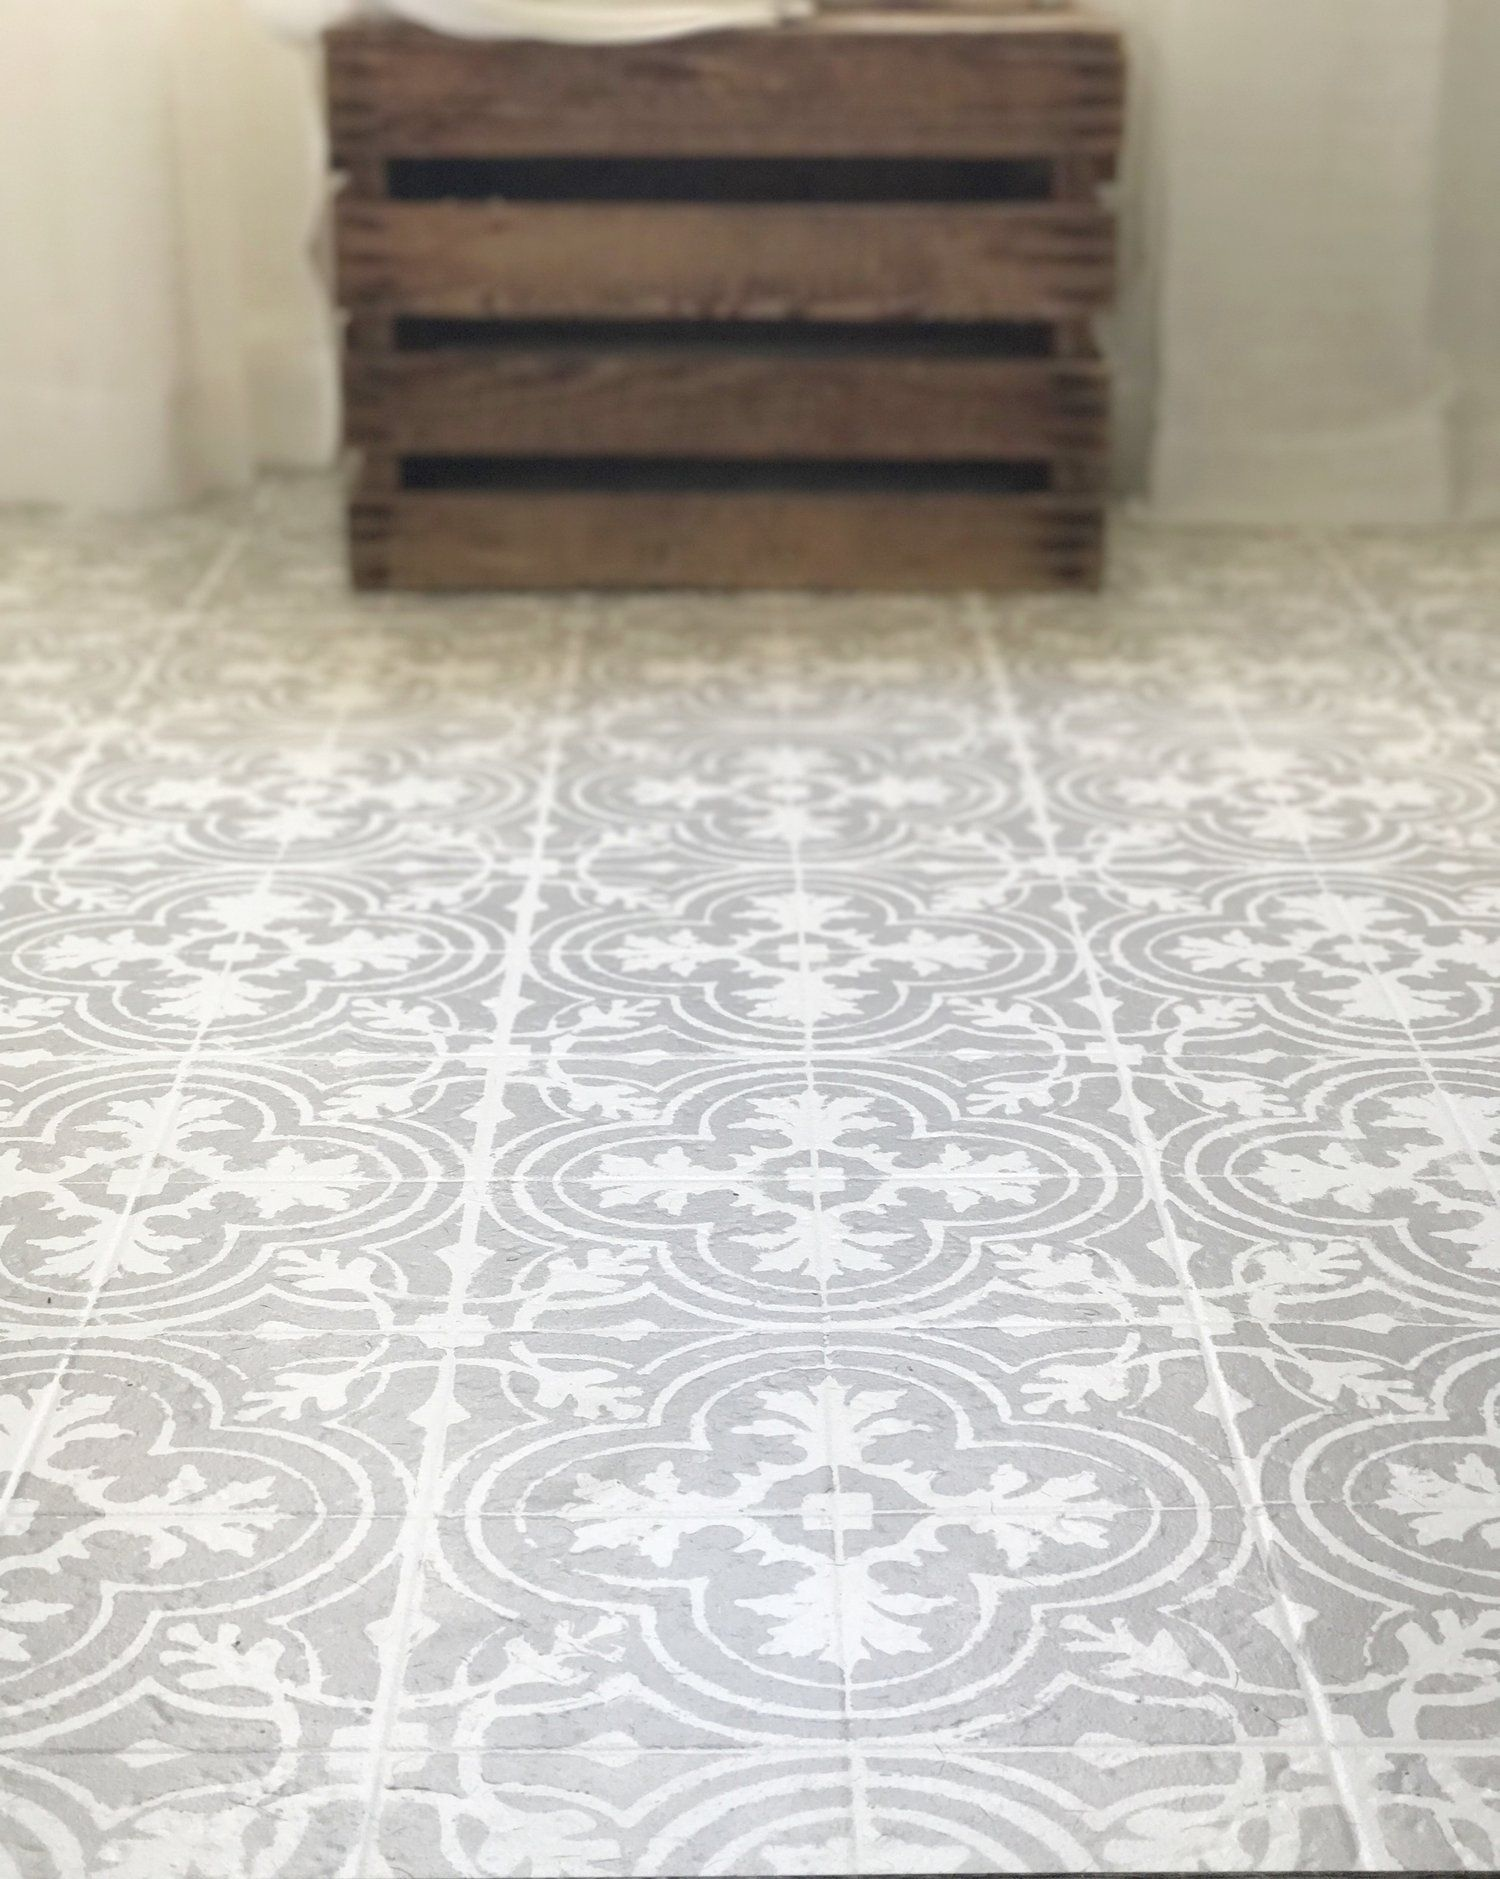 How To Paint Your Linoleum Or Tile Floors To Look Like Patterned Cement Tiles Full